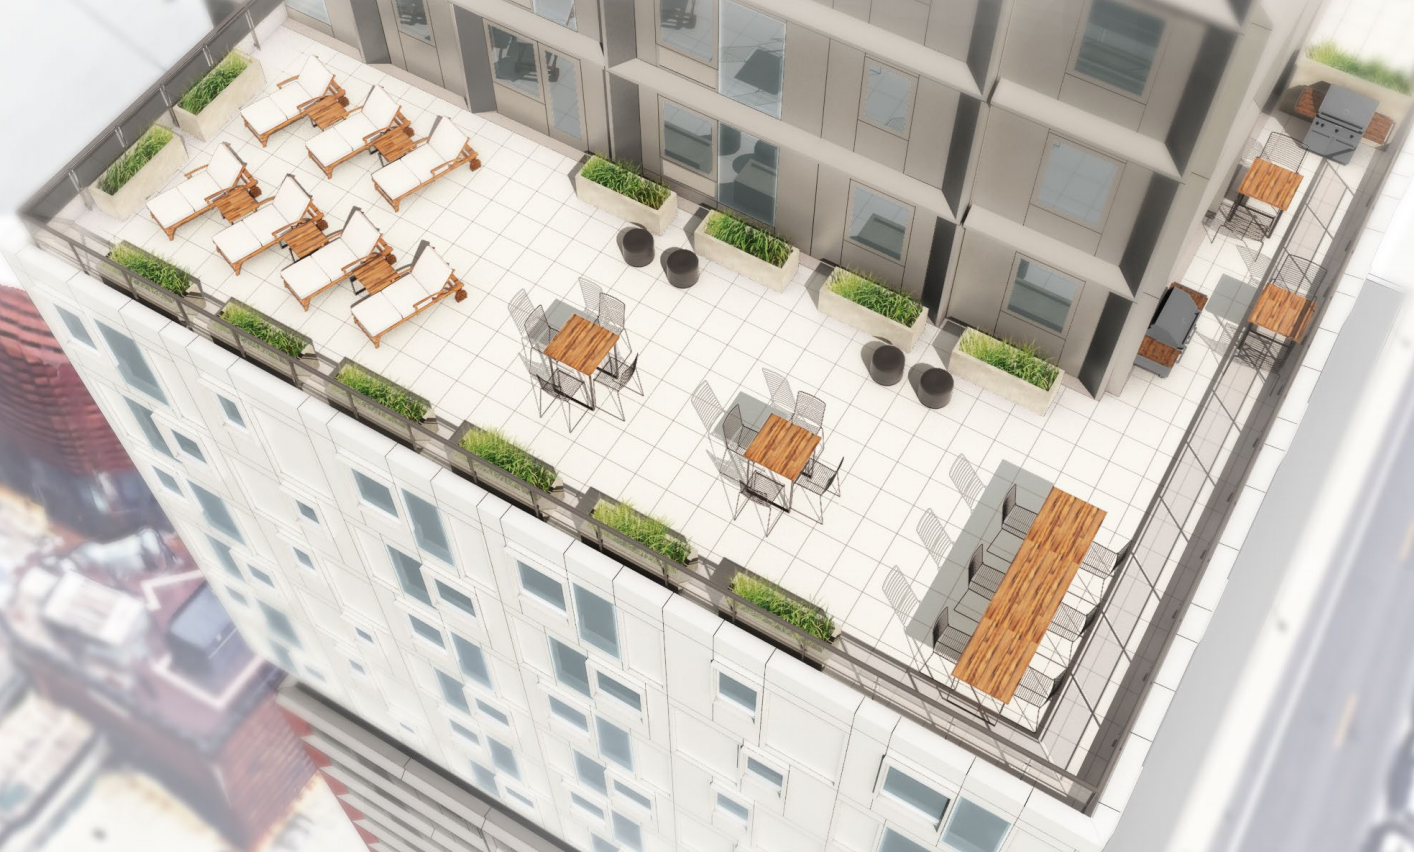 Roof deck at 38 Sixth Avenue, rendering by SHoP Architects